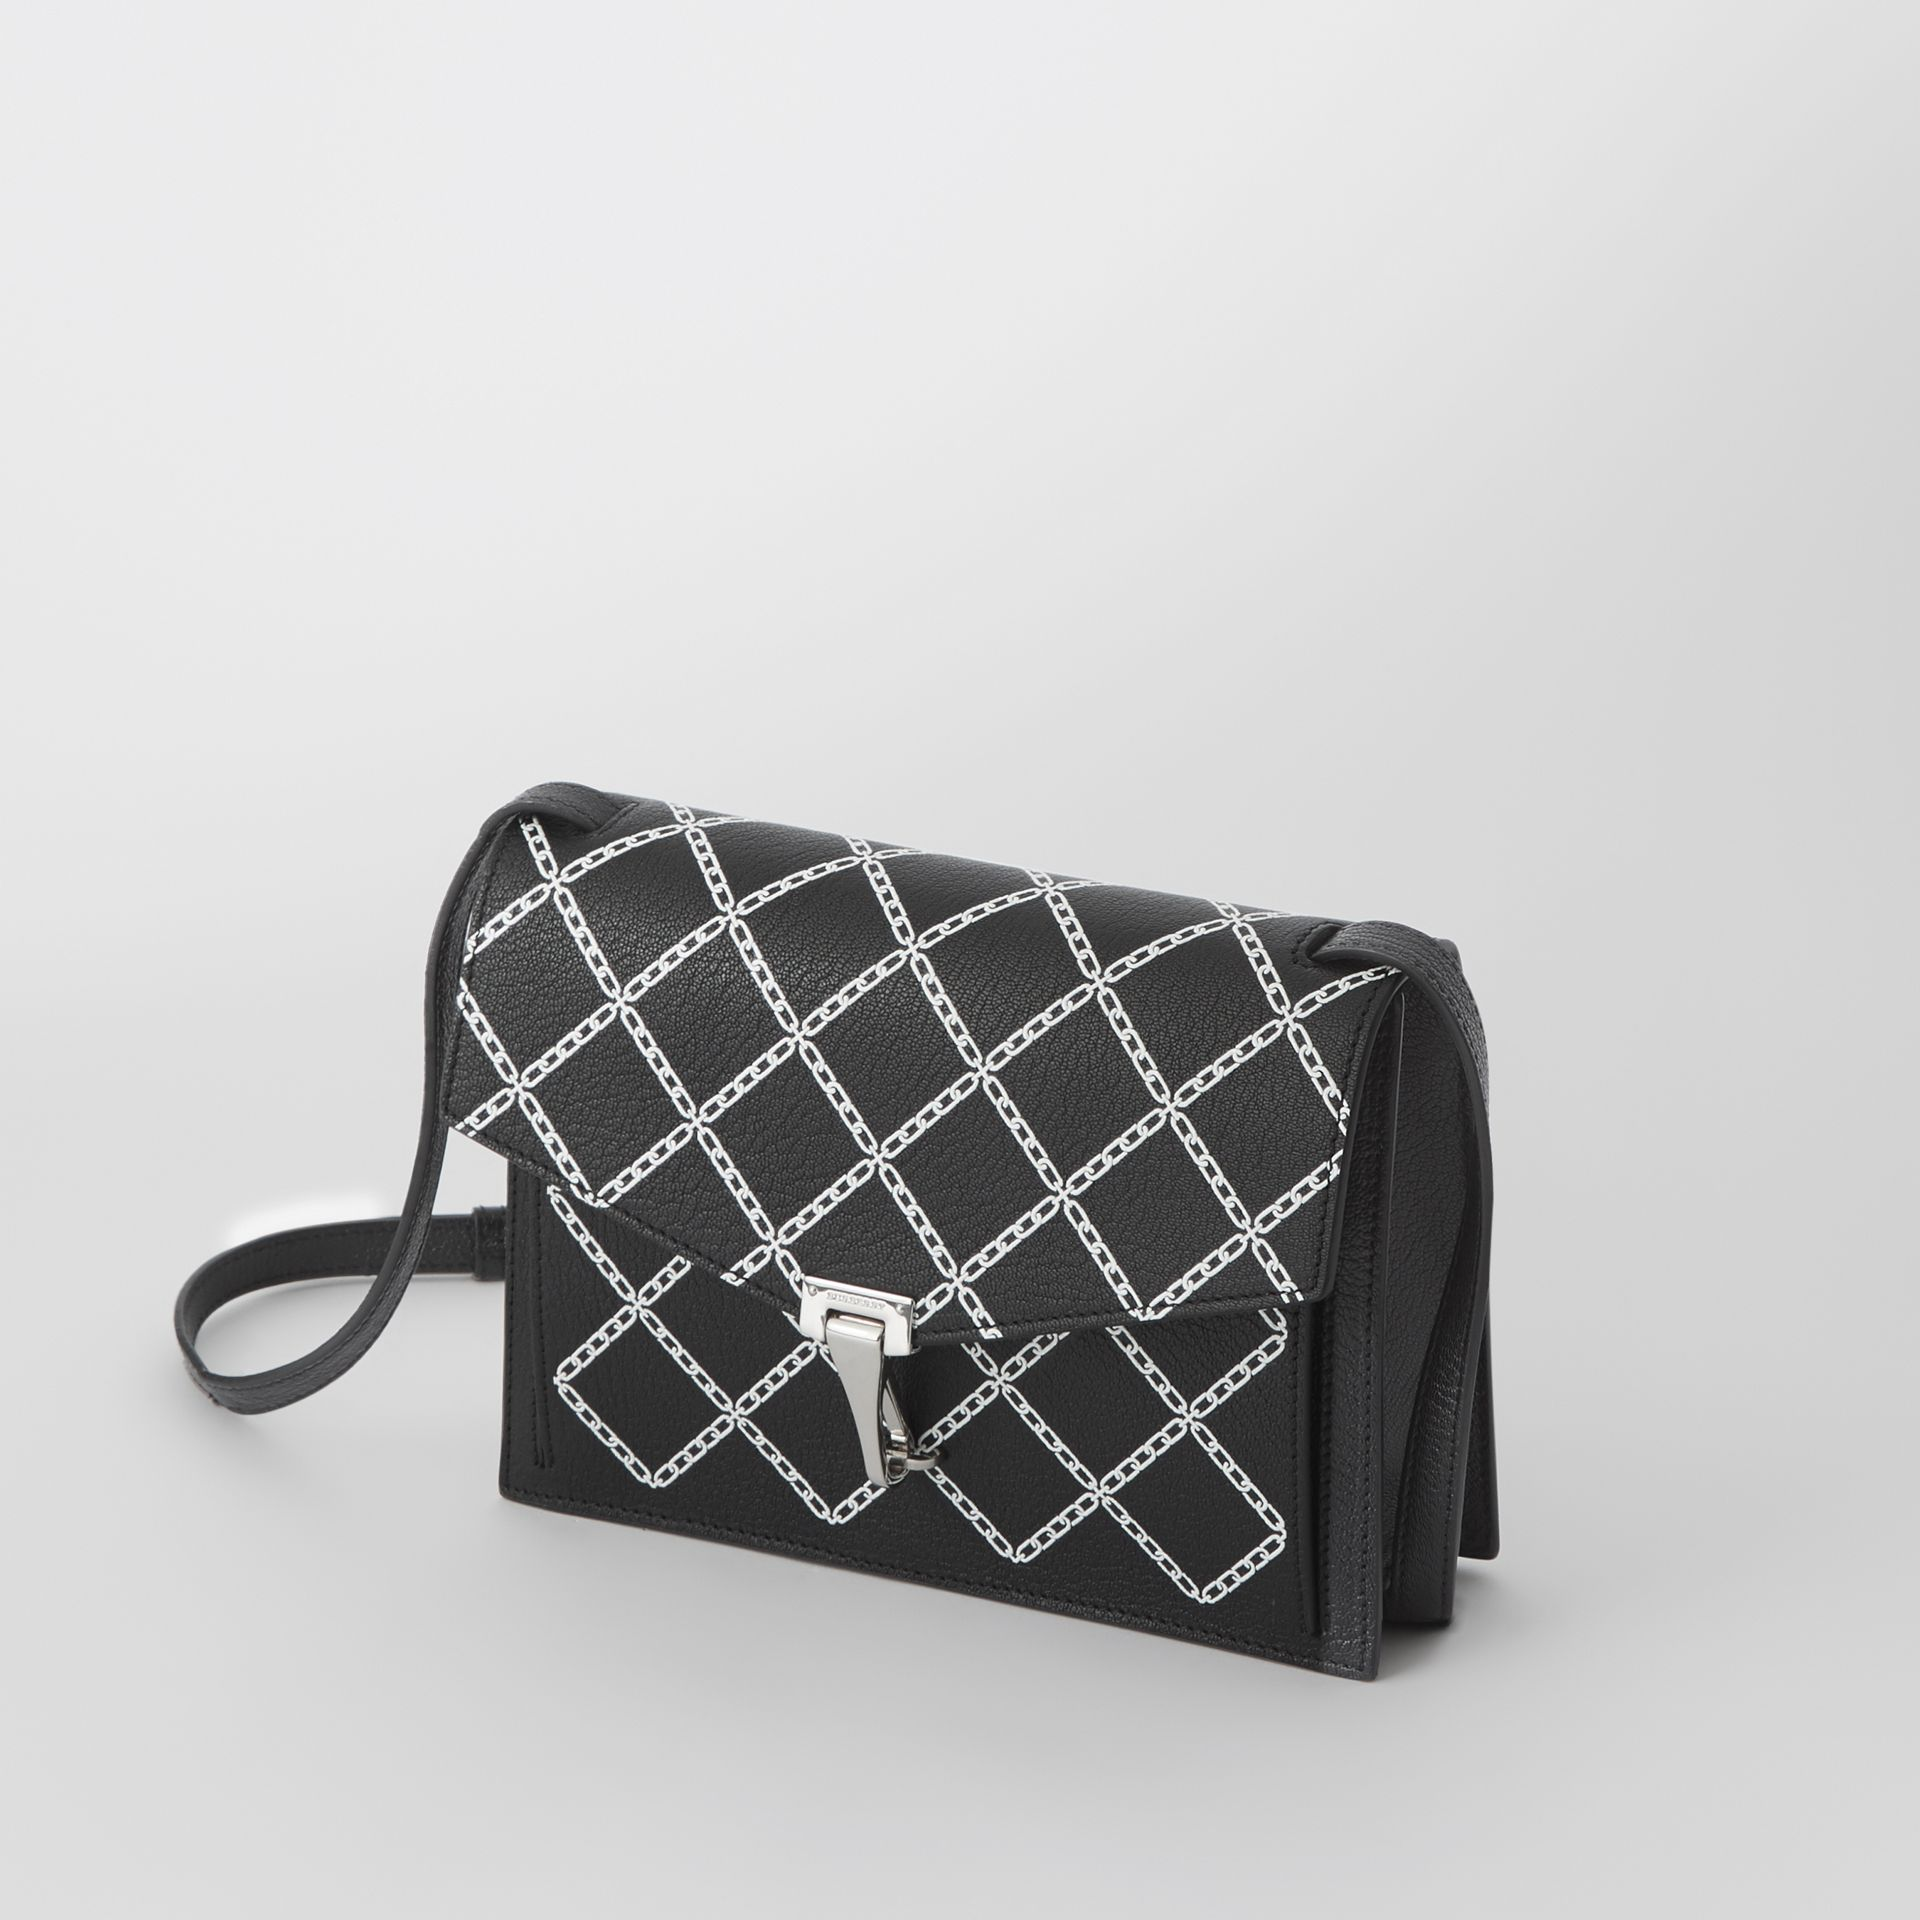 Small Link Print Leather Crossbody Bag in Black - Women | Burberry United States - gallery image 4